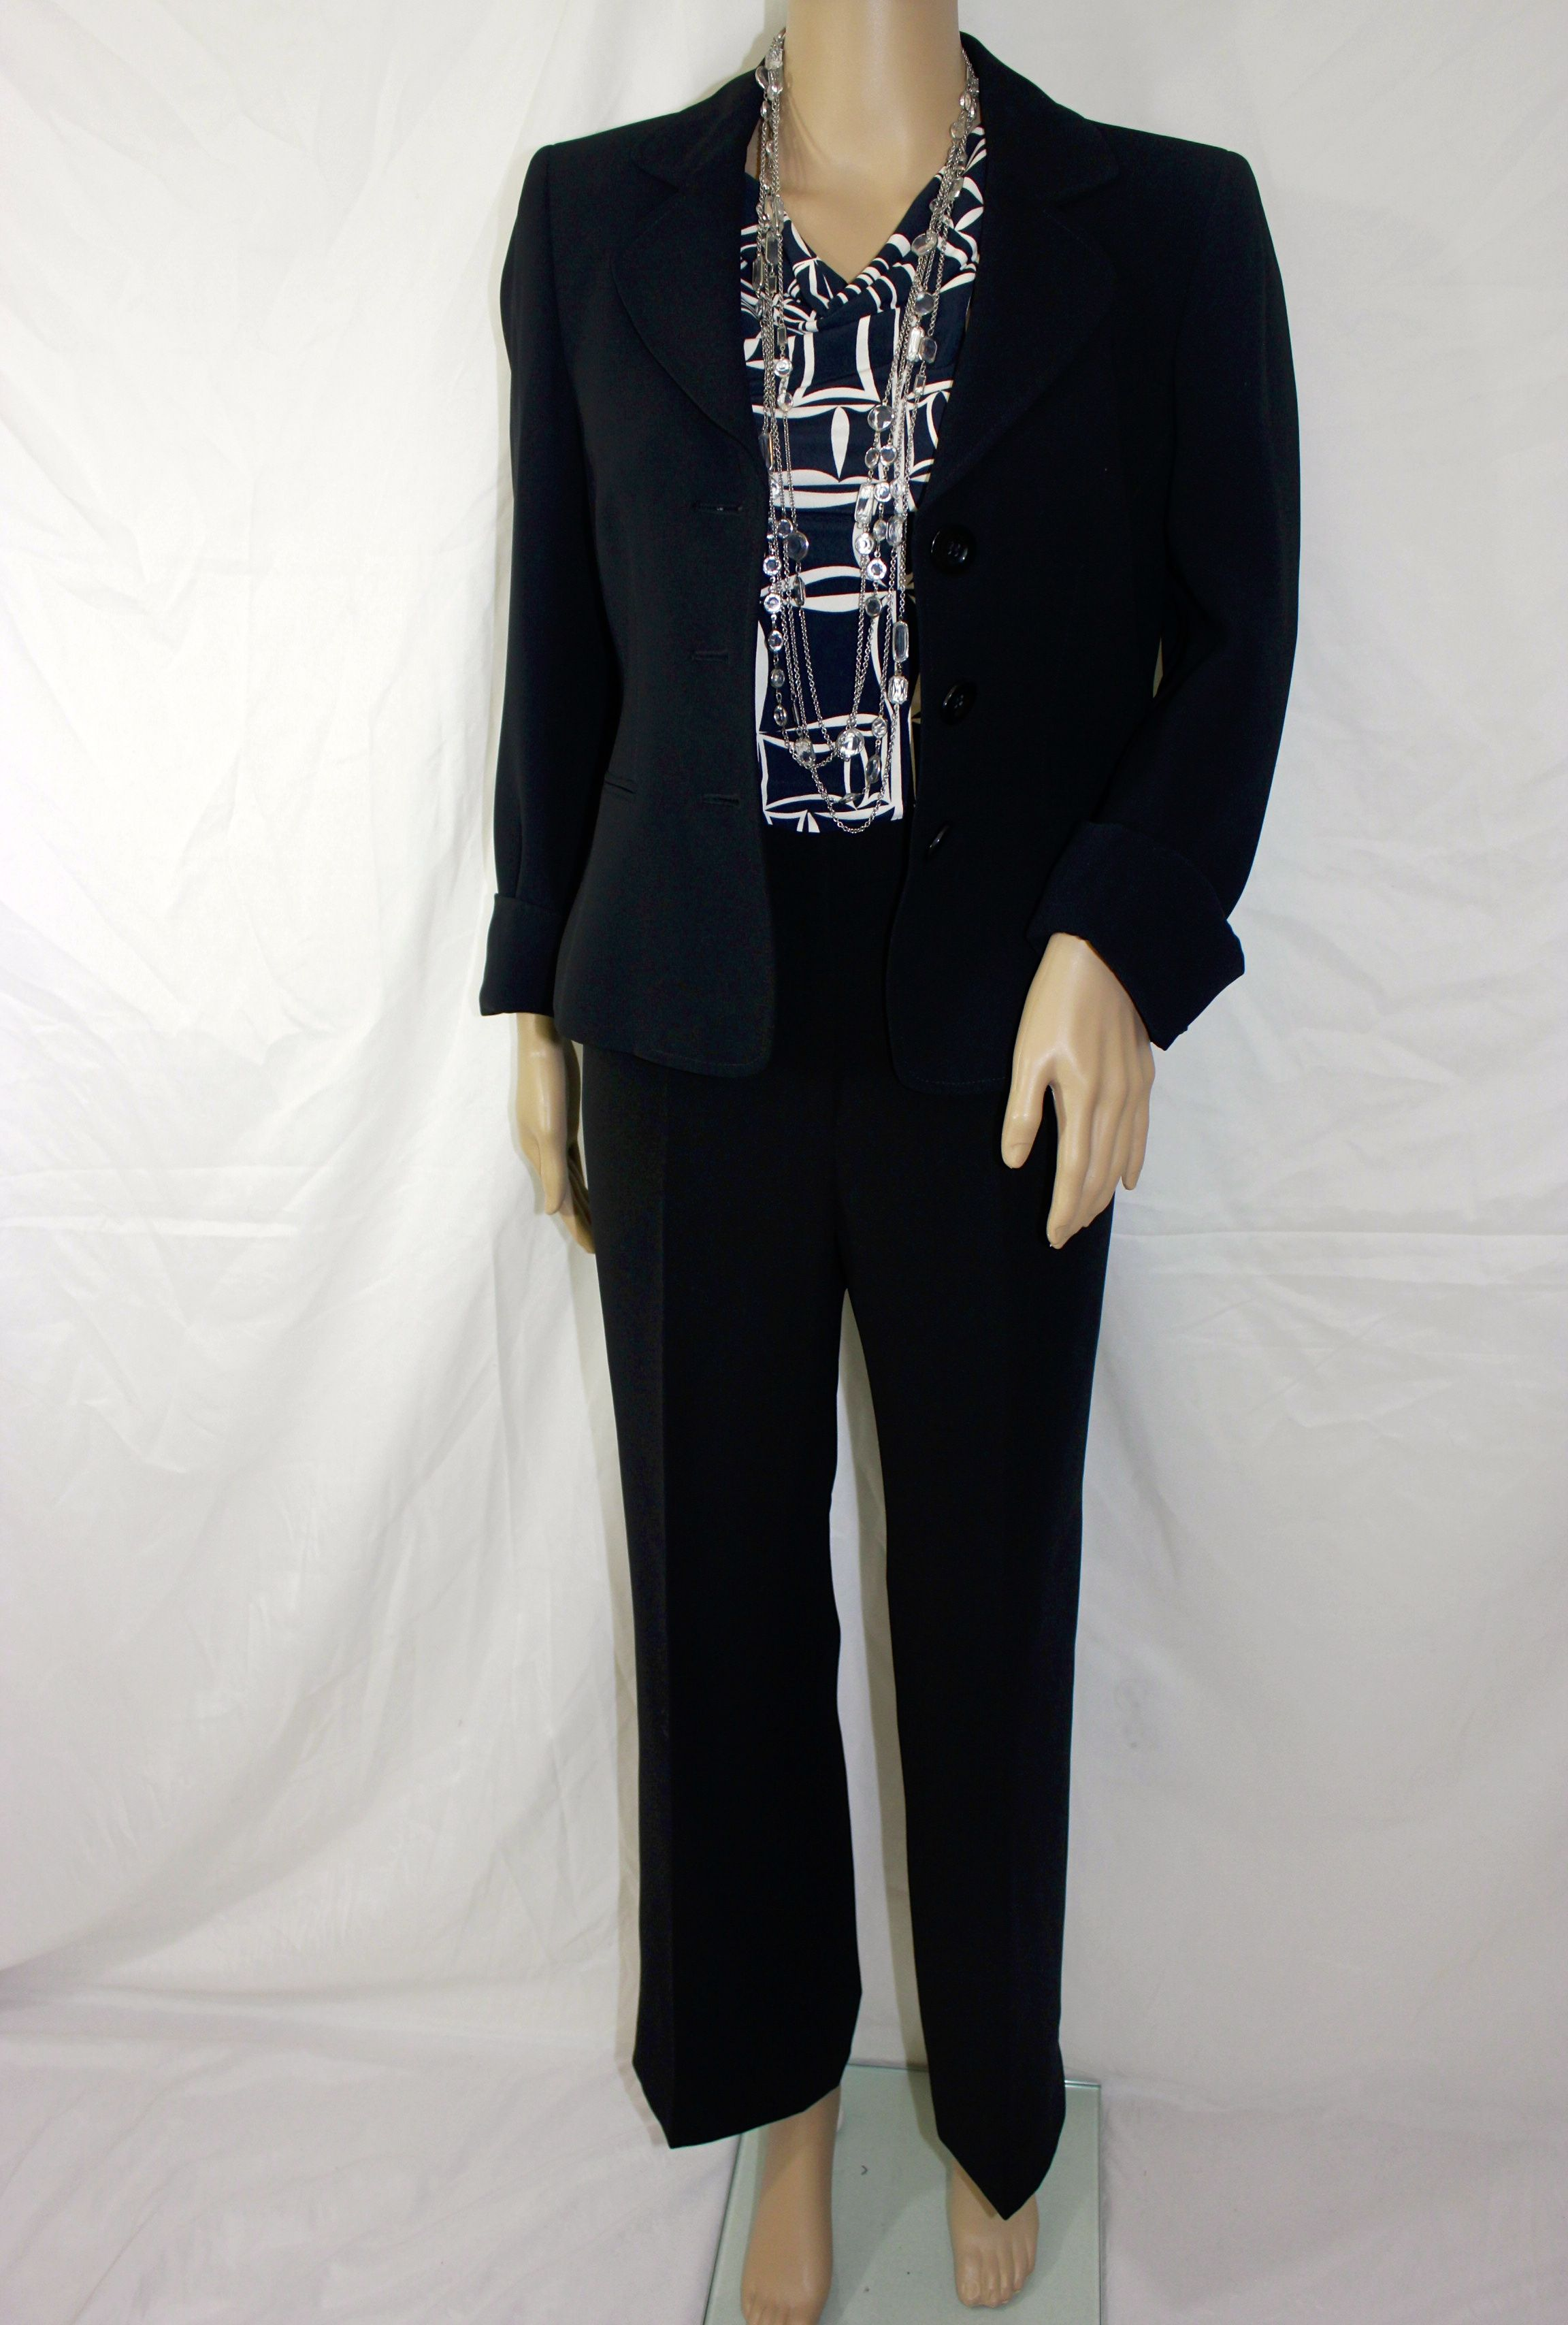 Kasper Black Blazer with buttons and pockets and Size 6 - Jones Wear Black and Beige Top with Cap Sleeves - Size Petite PM - Women's Black Pant and Fully Lined Size 6P